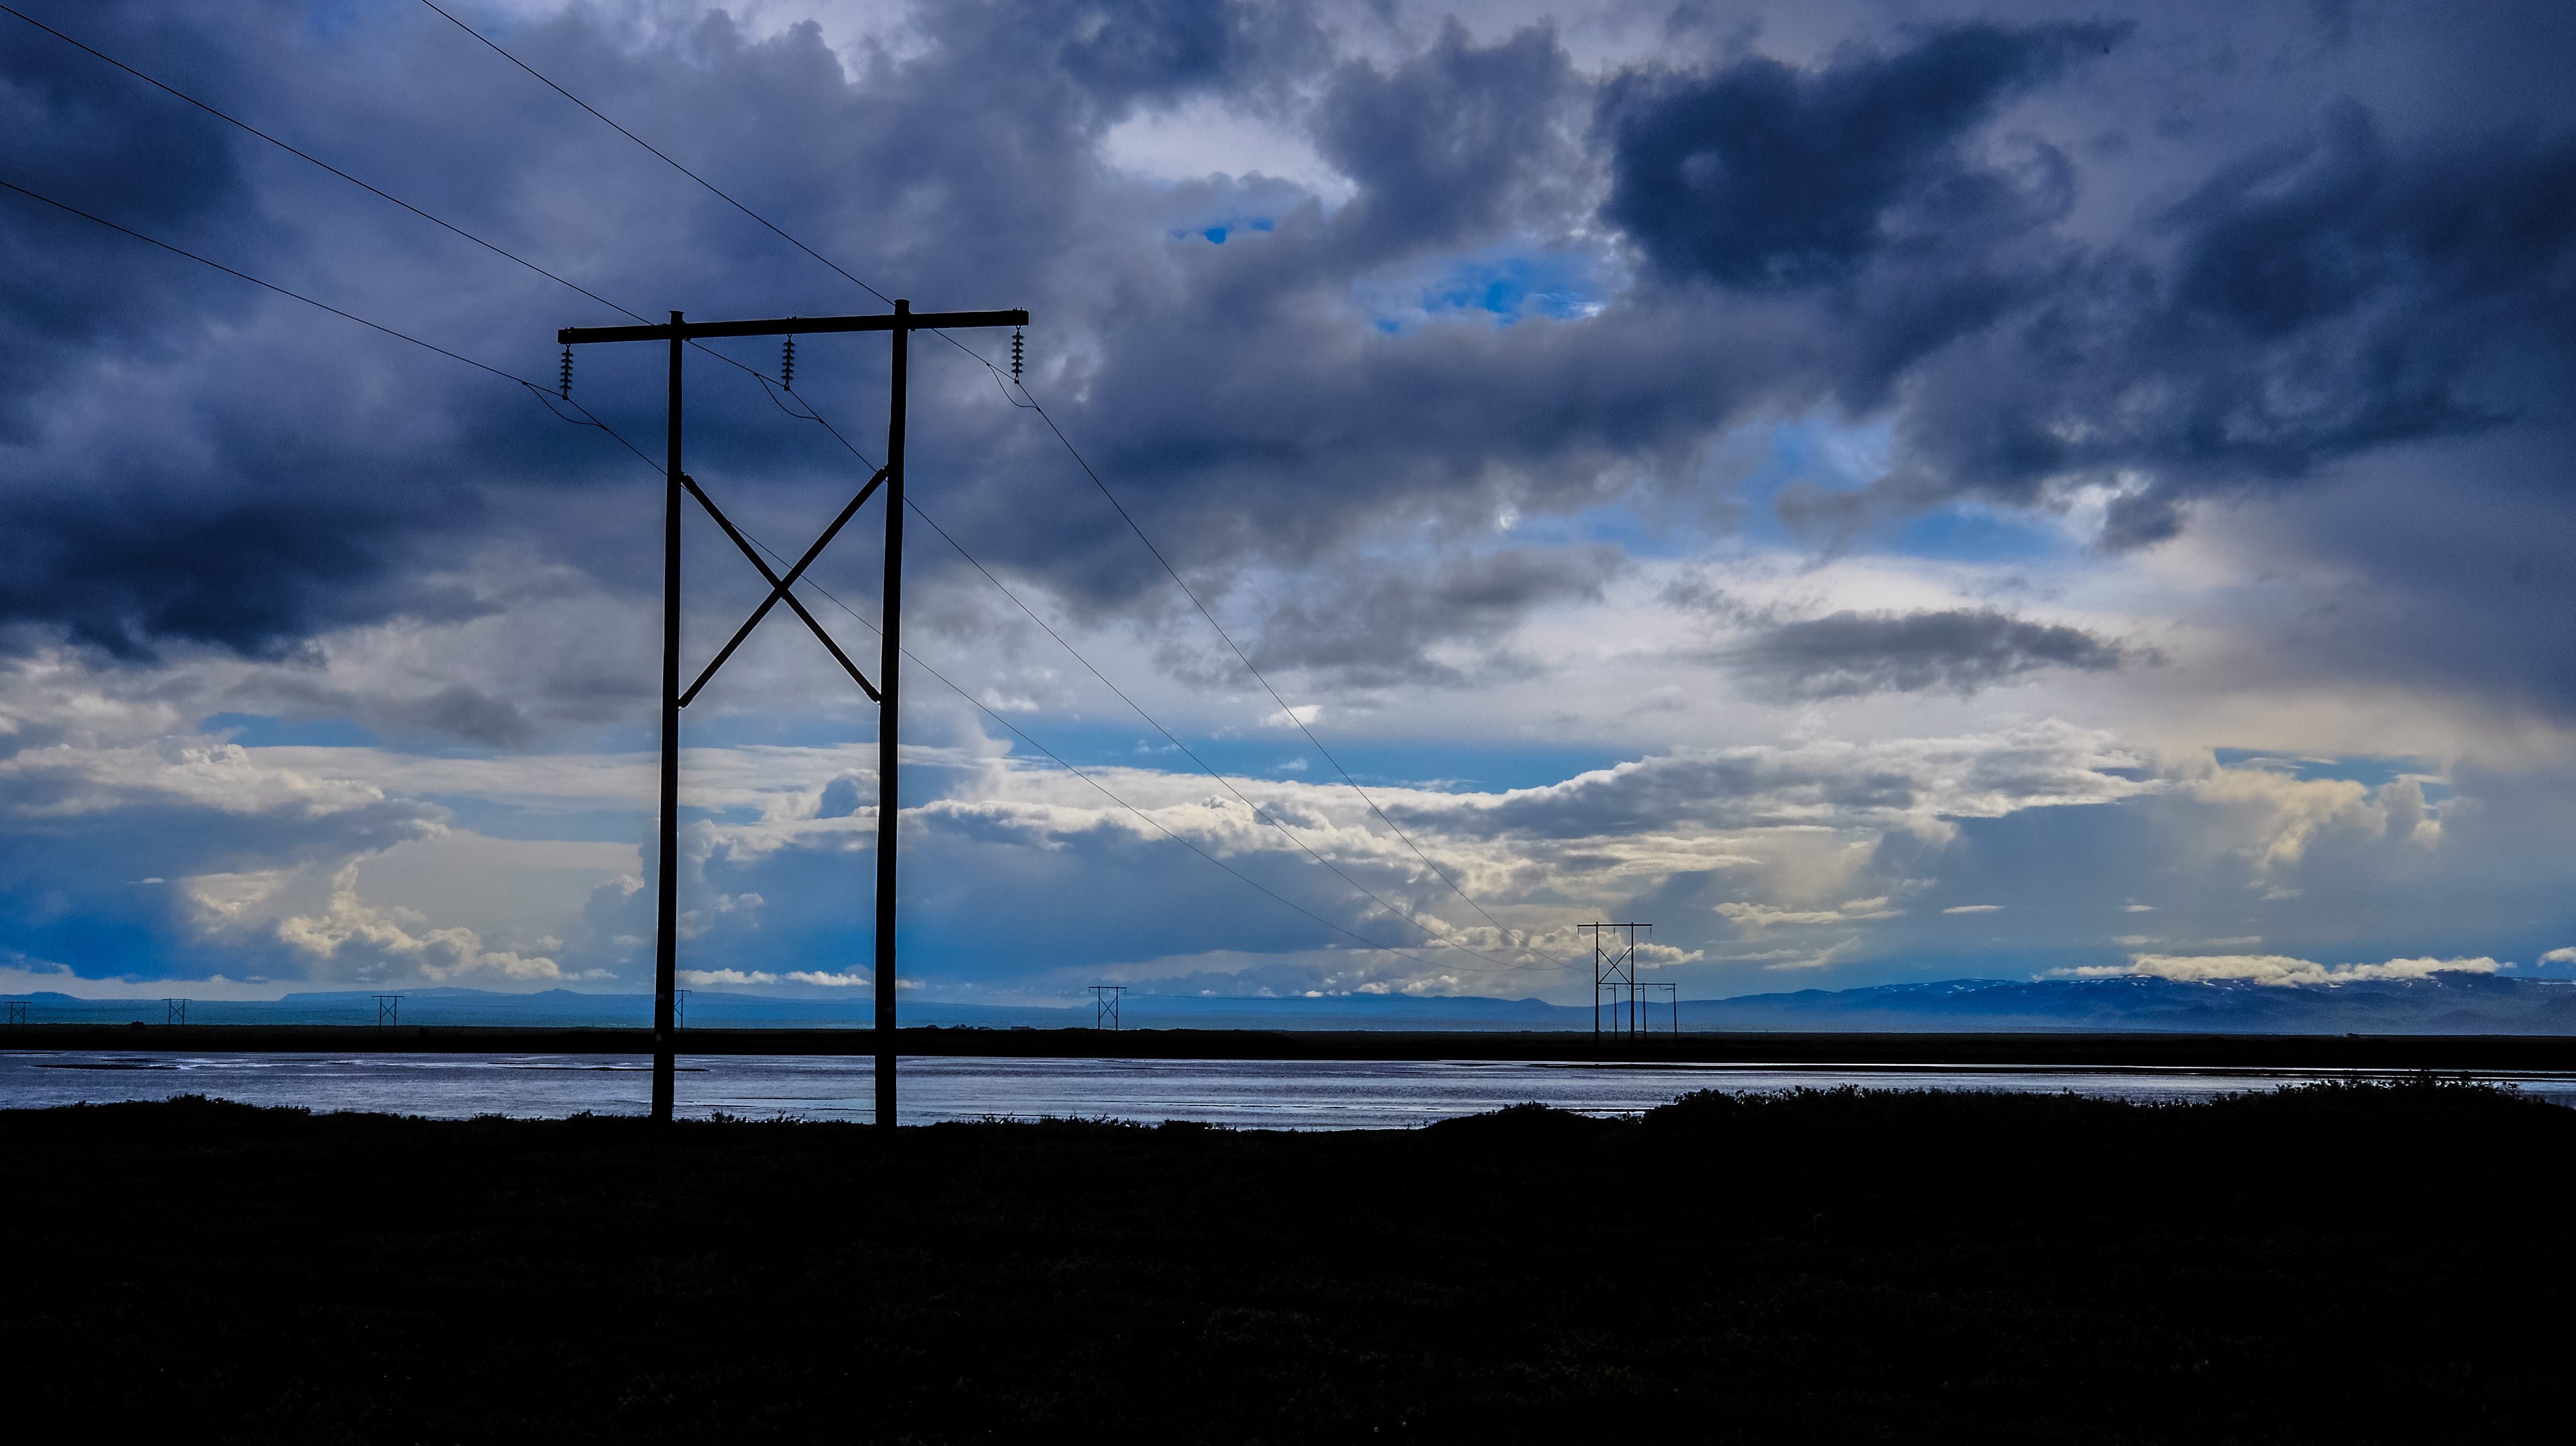 backlit, clouds, electric posts